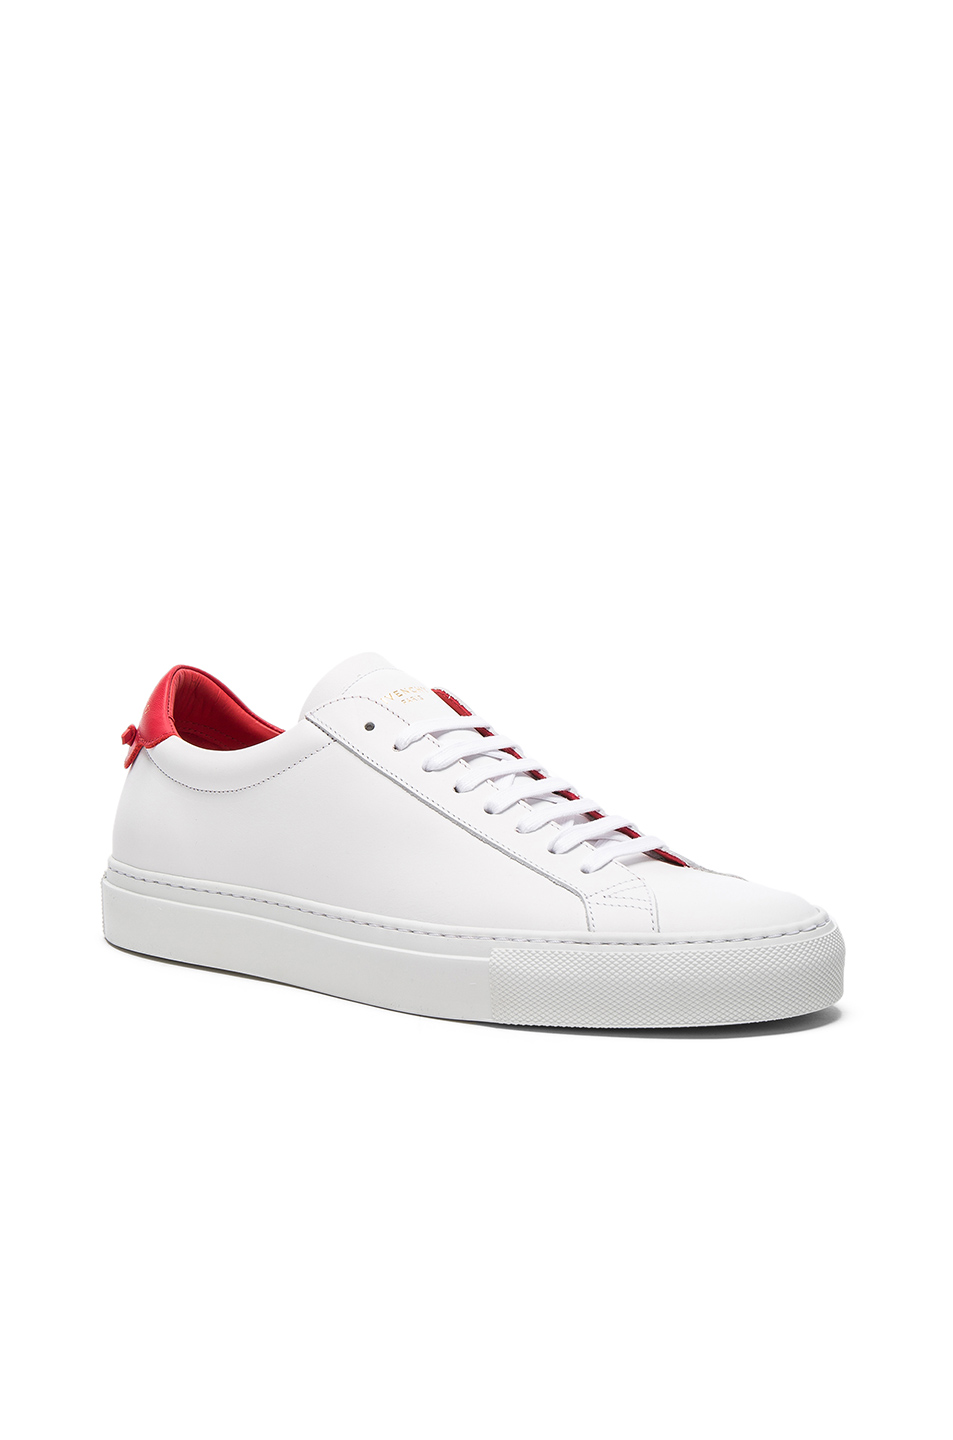 Givenchy Urban Street Low Top Sneakers in White